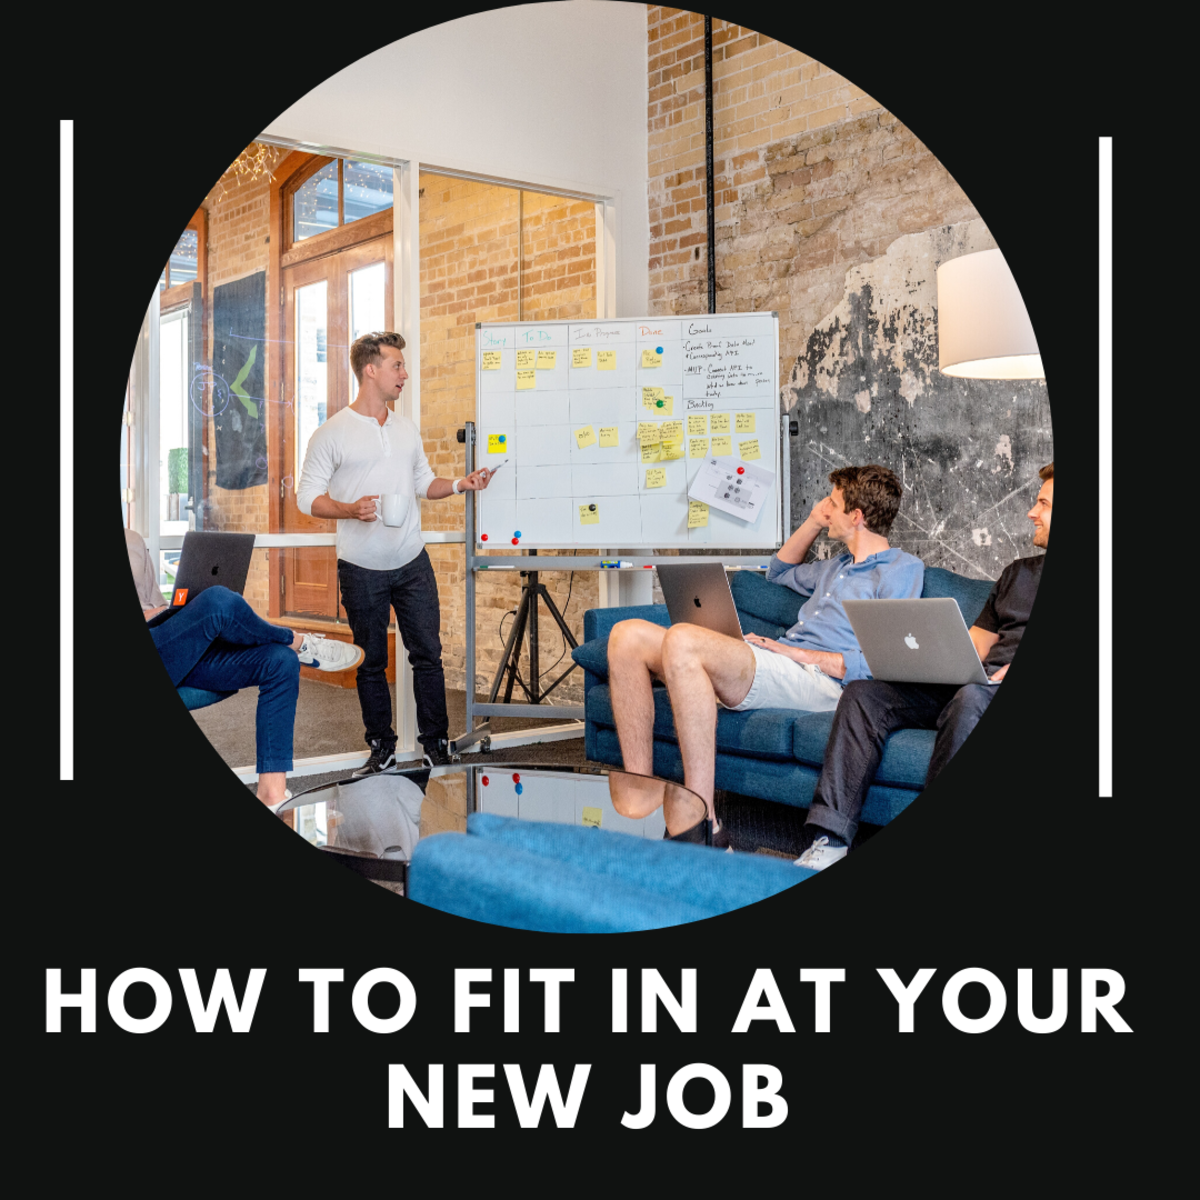 How to Fit in at Your New Job